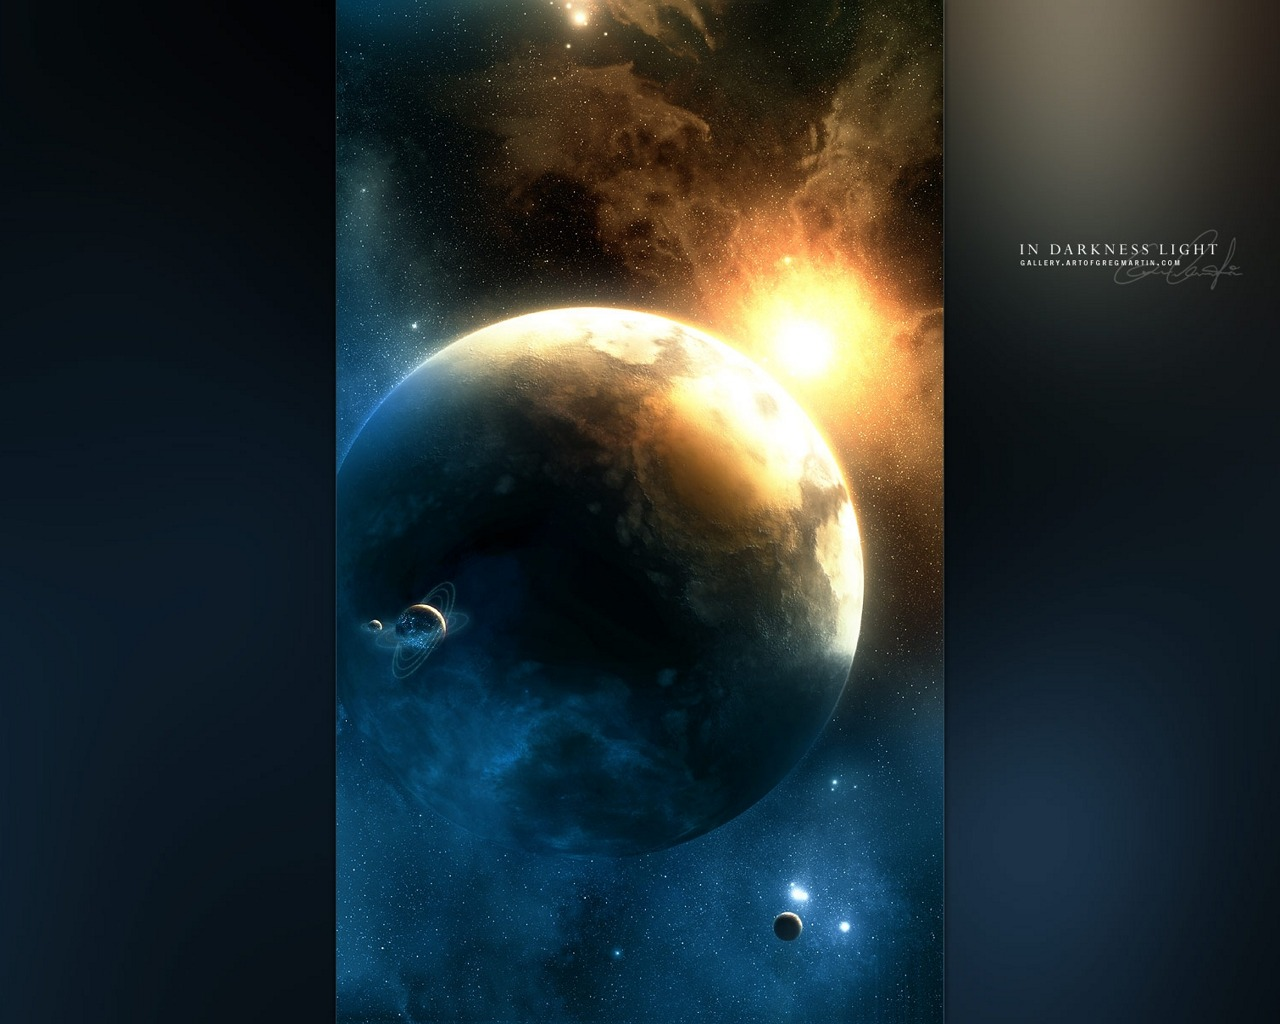 Cool Hd Space Galaxy Wallpapers: Cool HD Space Galaxy Wallpapers